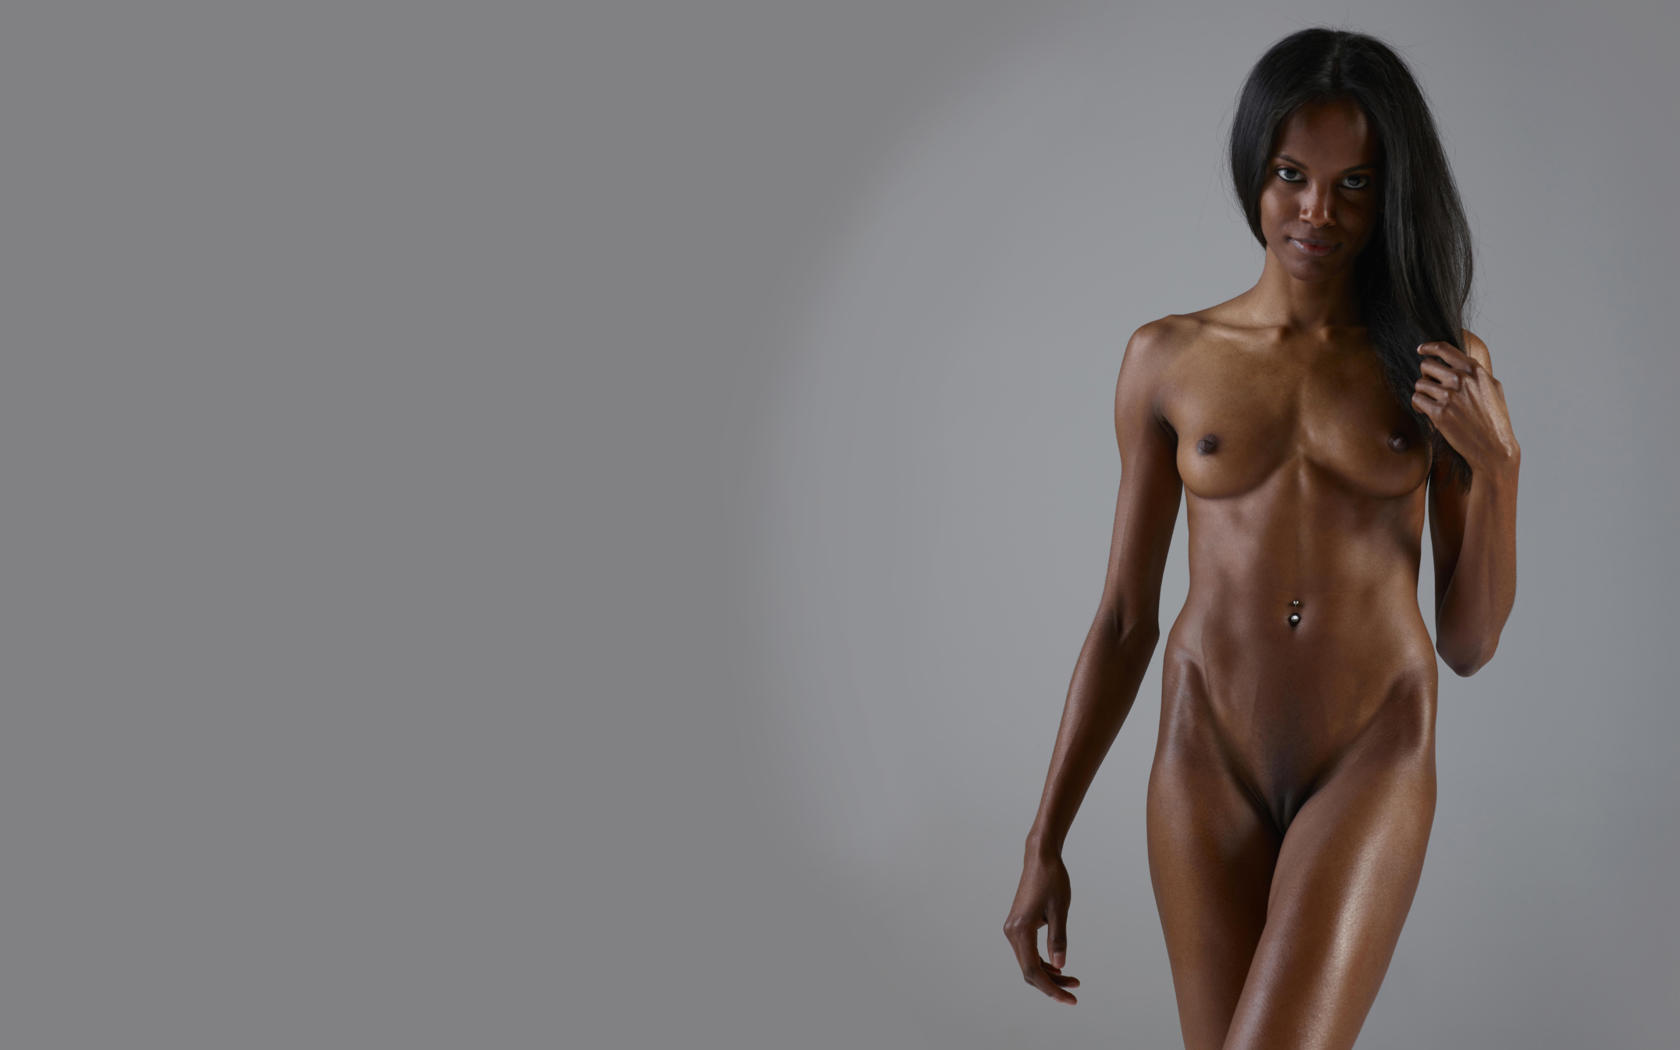 hottest foreign chicks naked